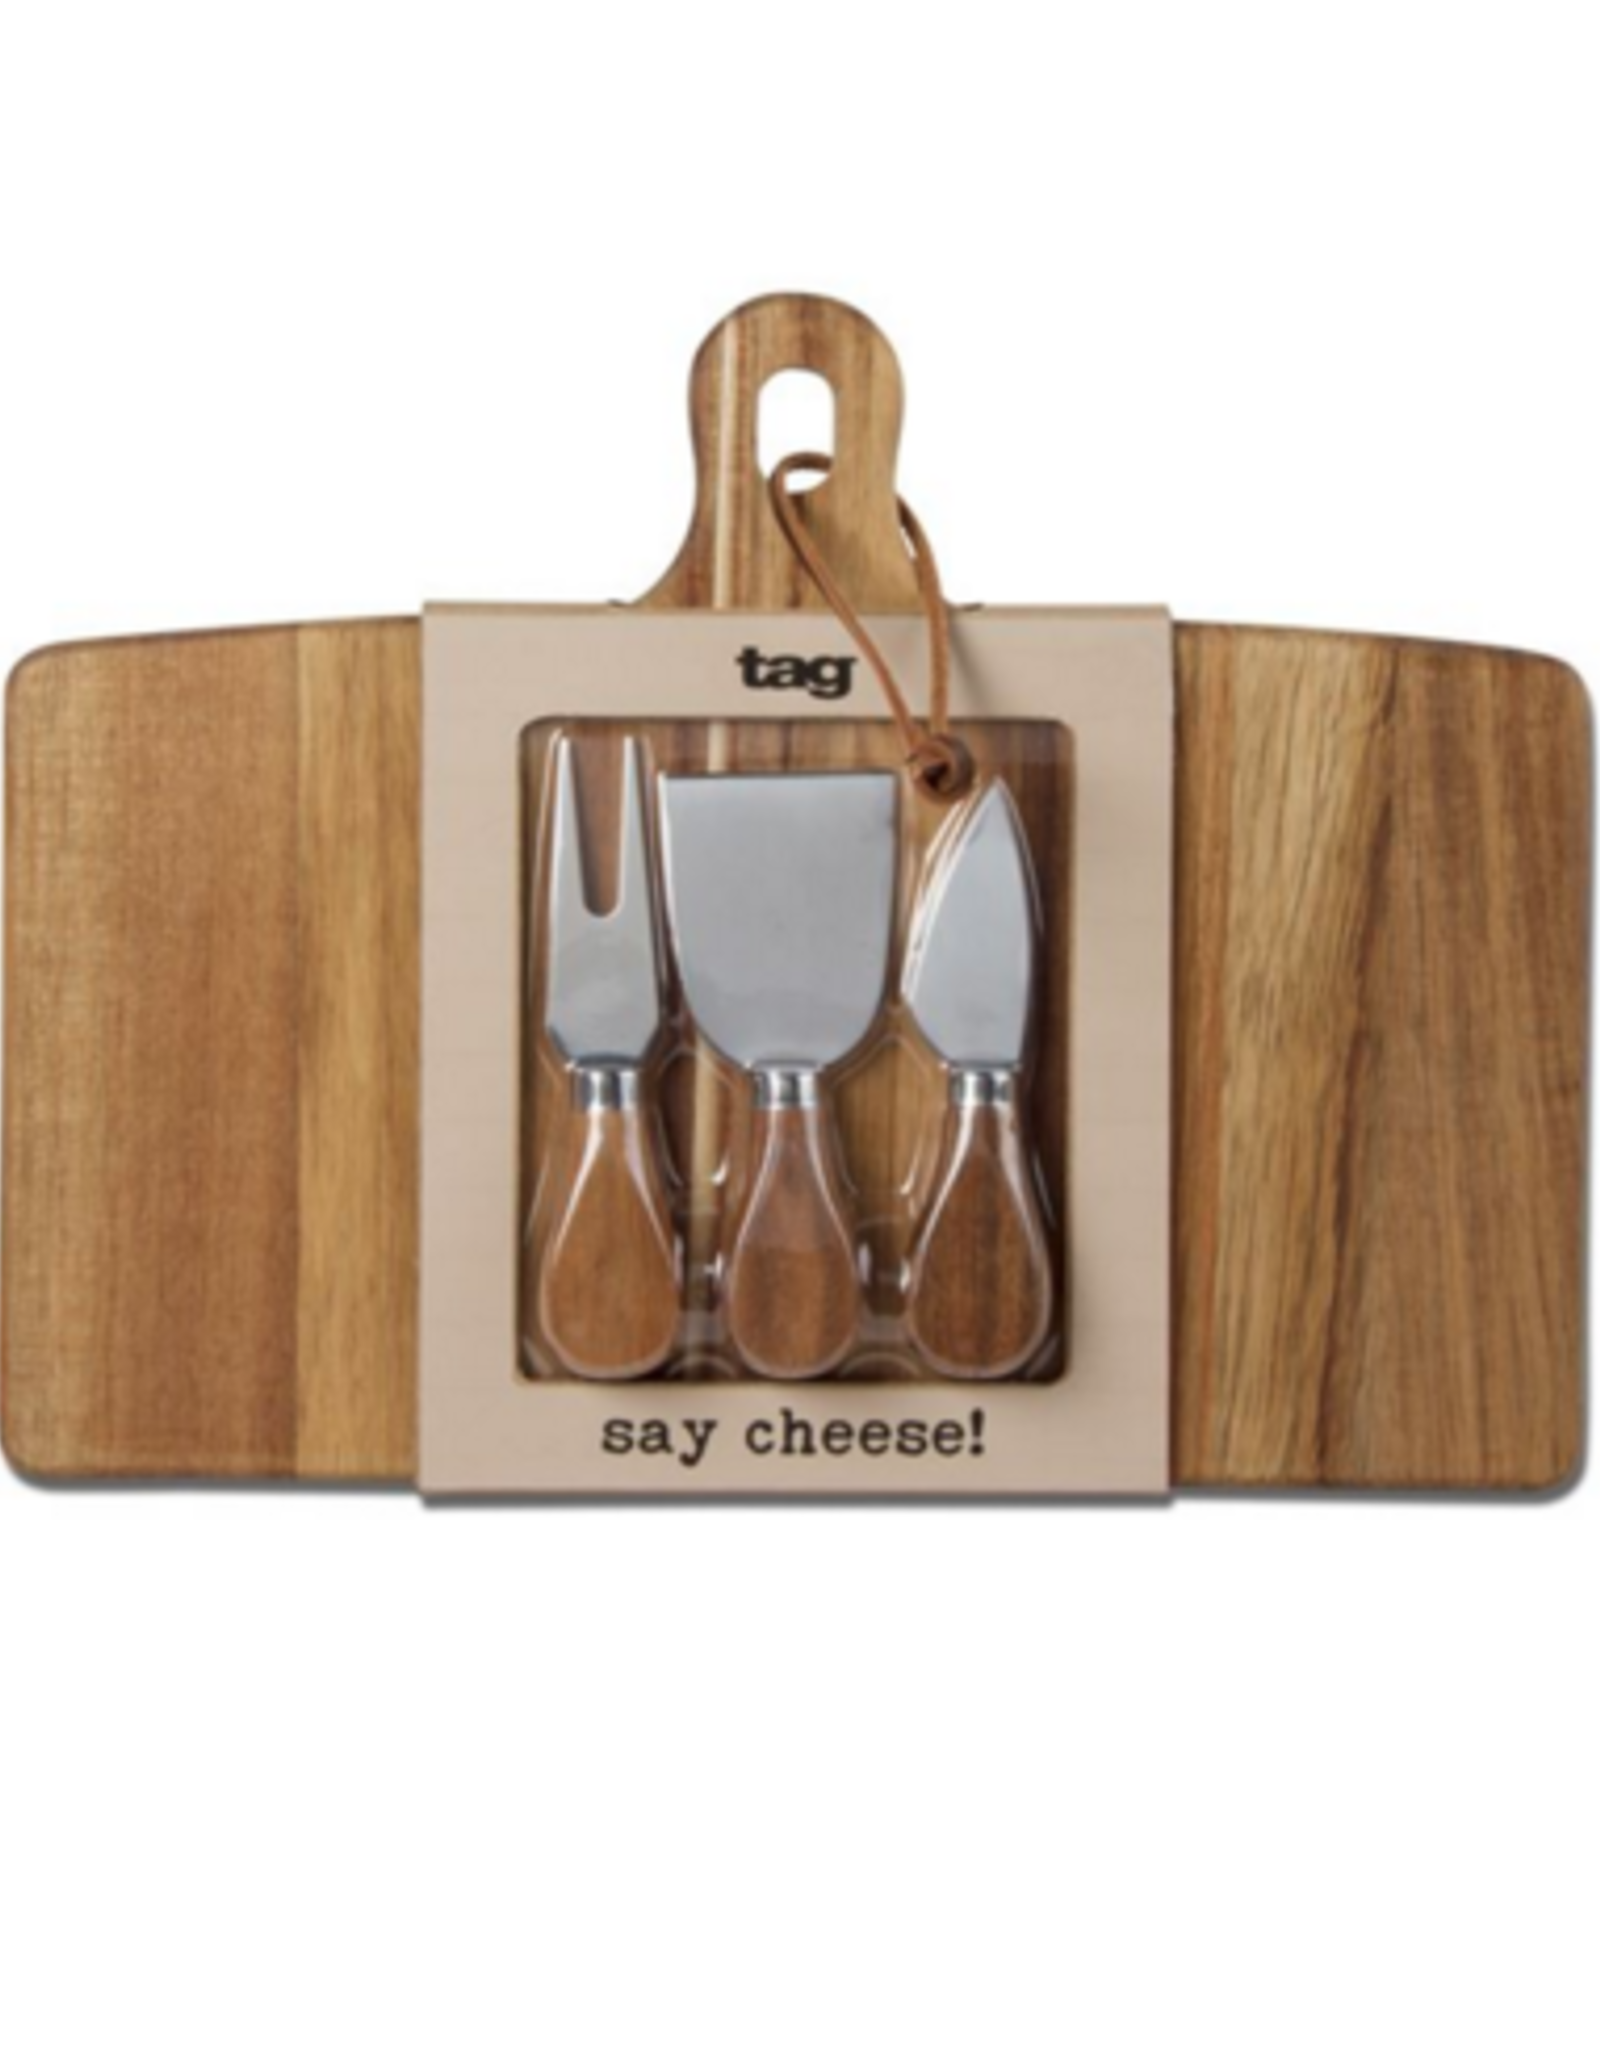 Say Cheese! Large cheese board with knives